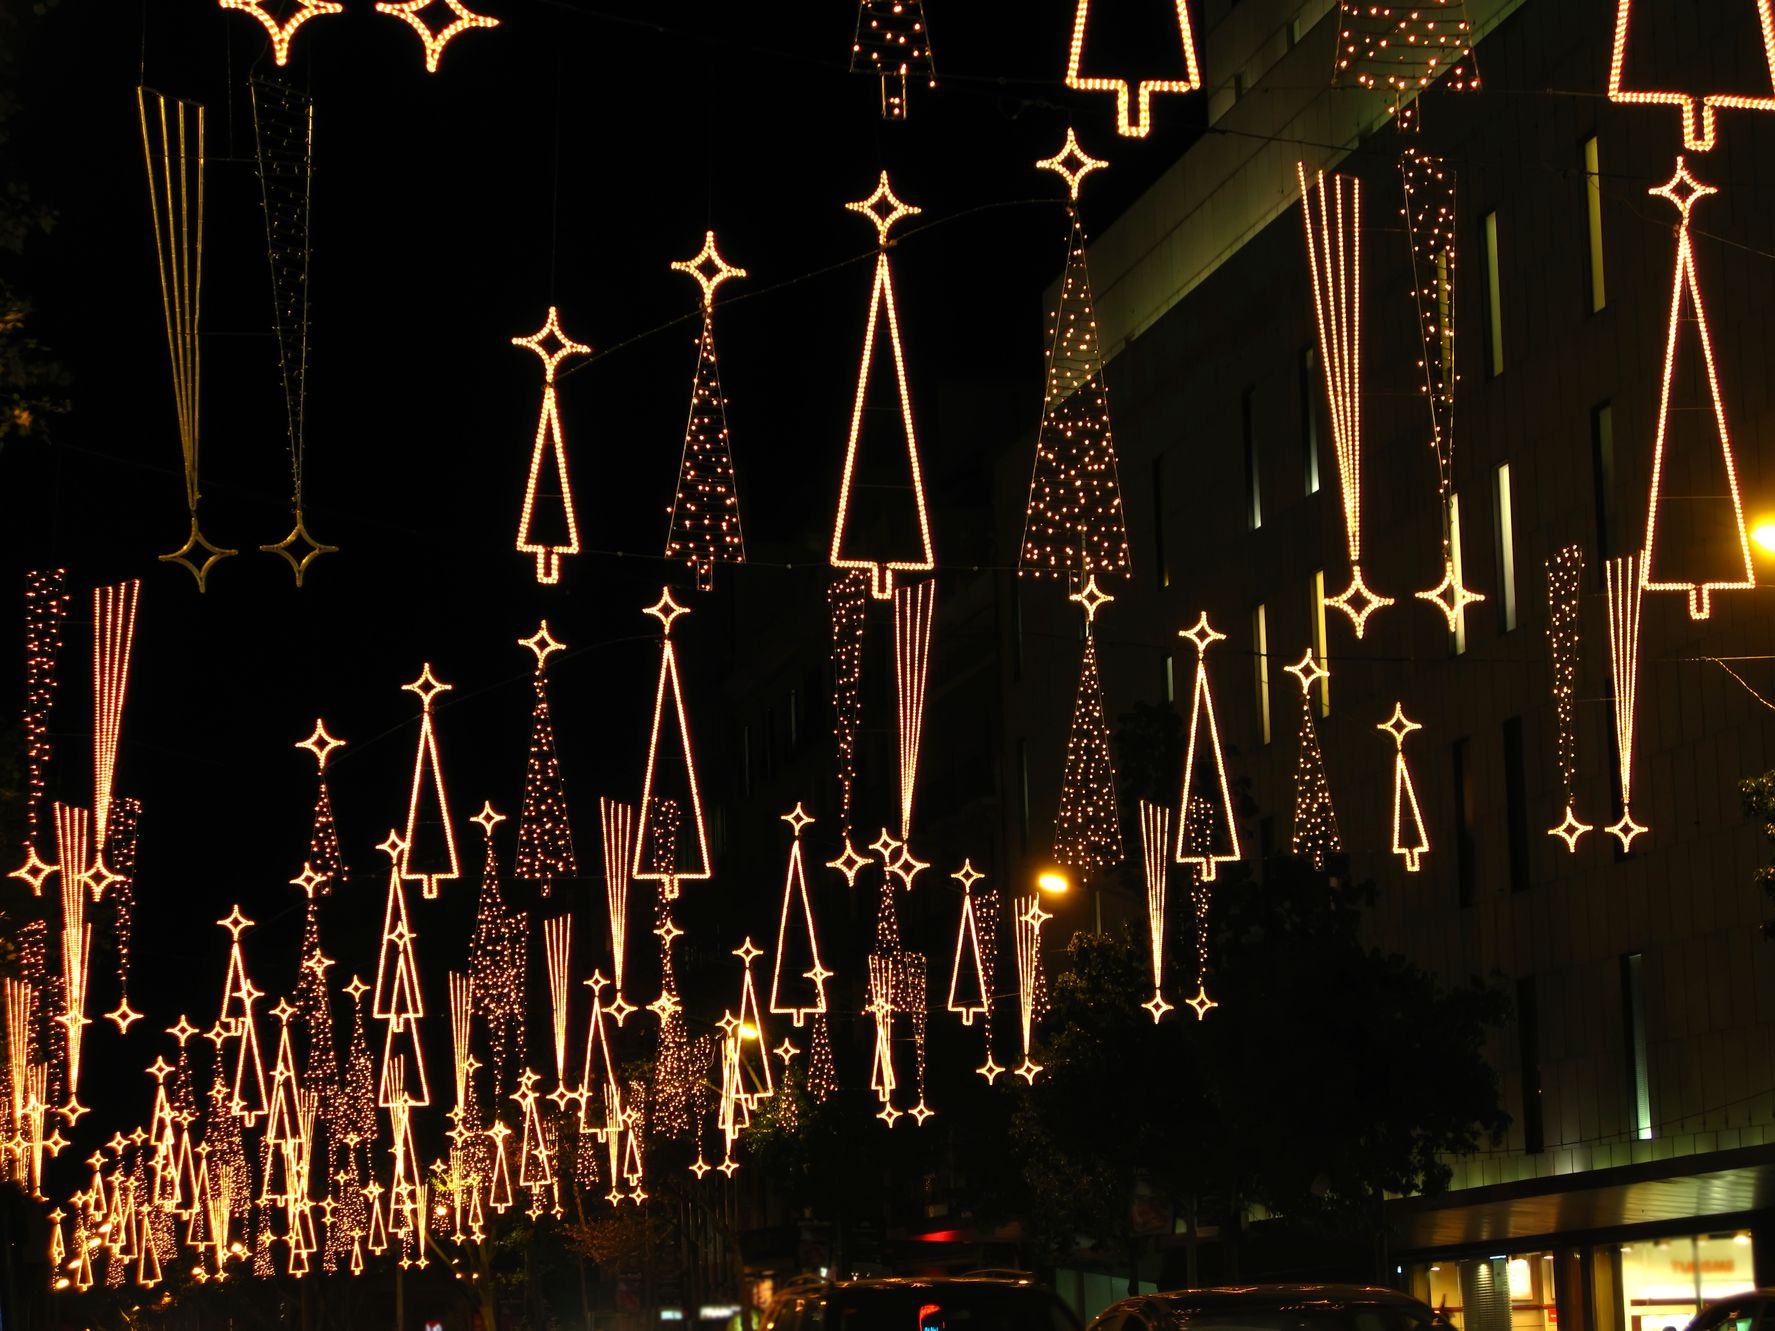 Christmas decorations in Barcelona, Spain